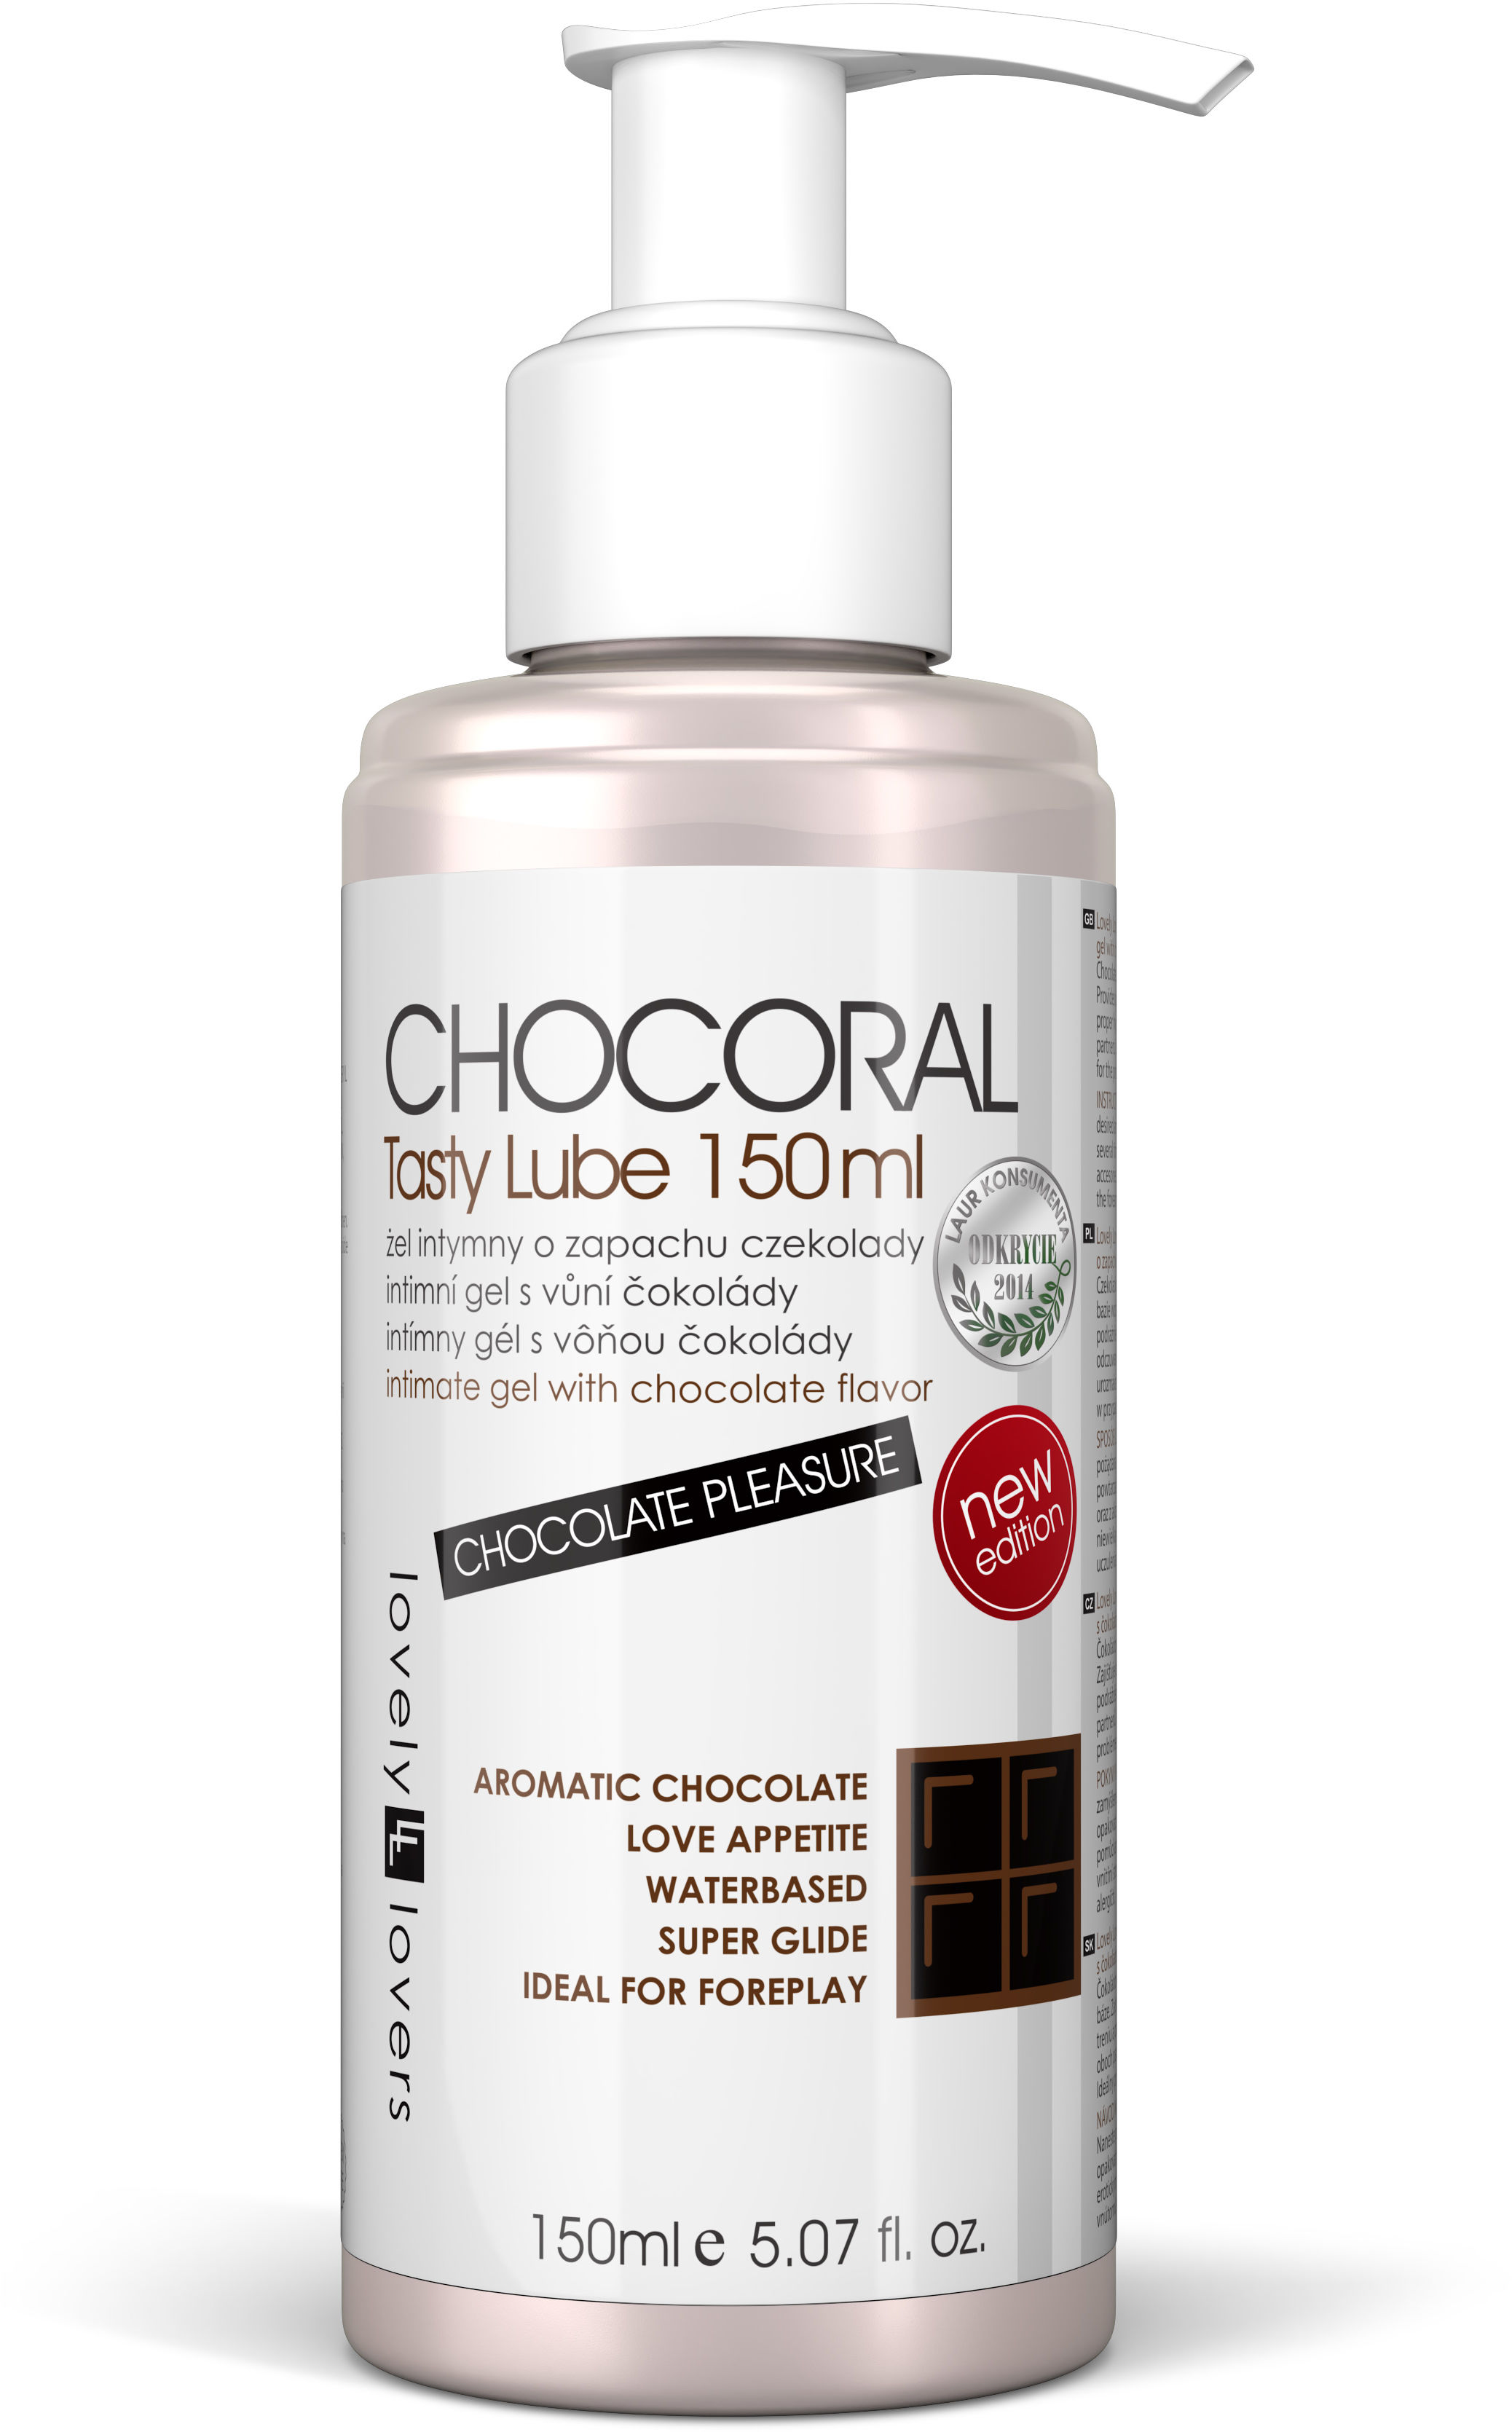 Lovely Lovers Chocoral Tasty Lube 150ml